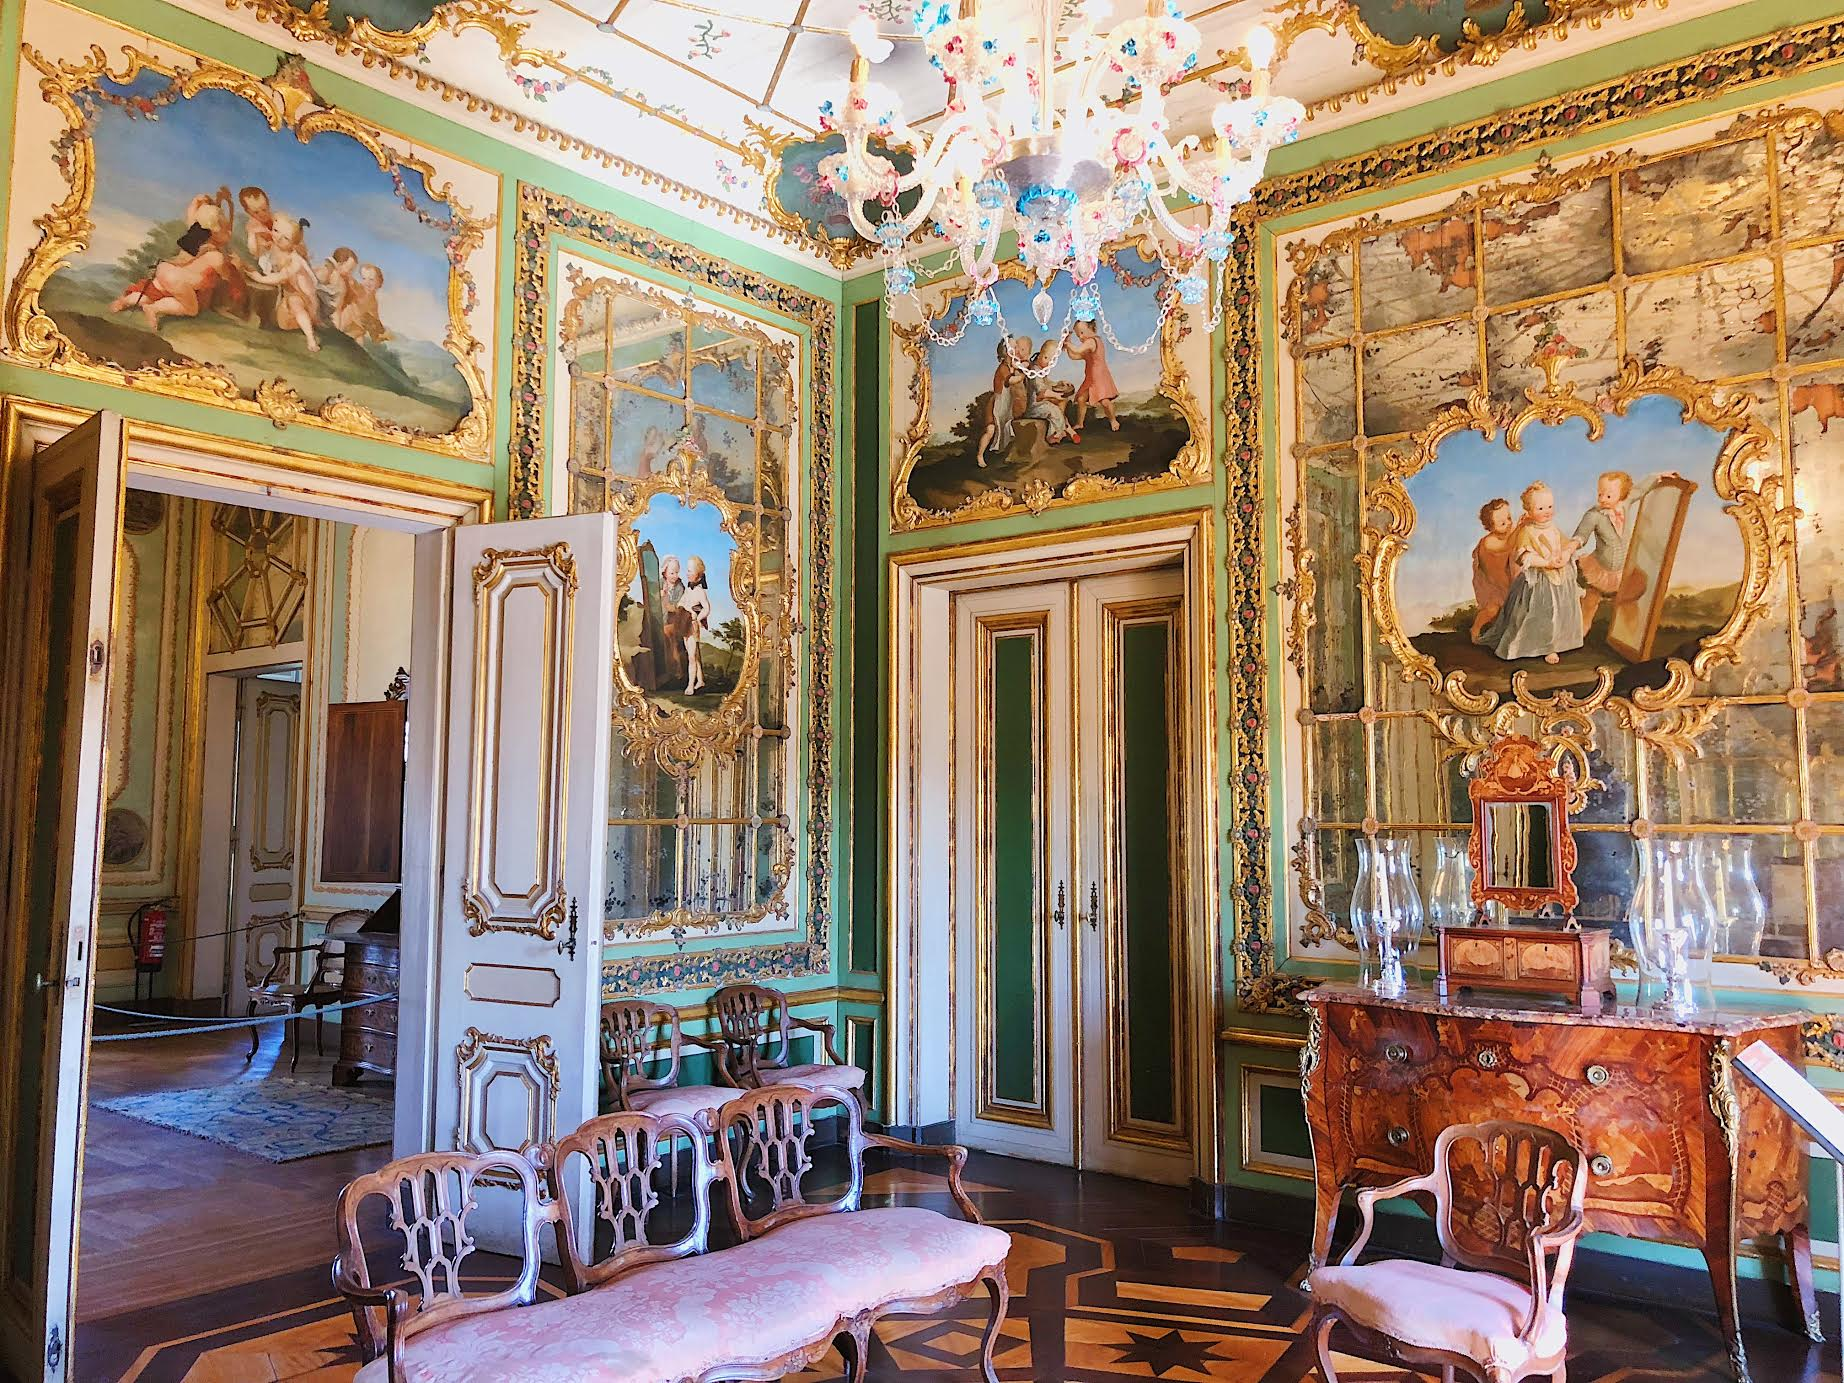 Muslim-travel-guide-Sintra-Portugal-Palace-of-Queluz-travel-tips